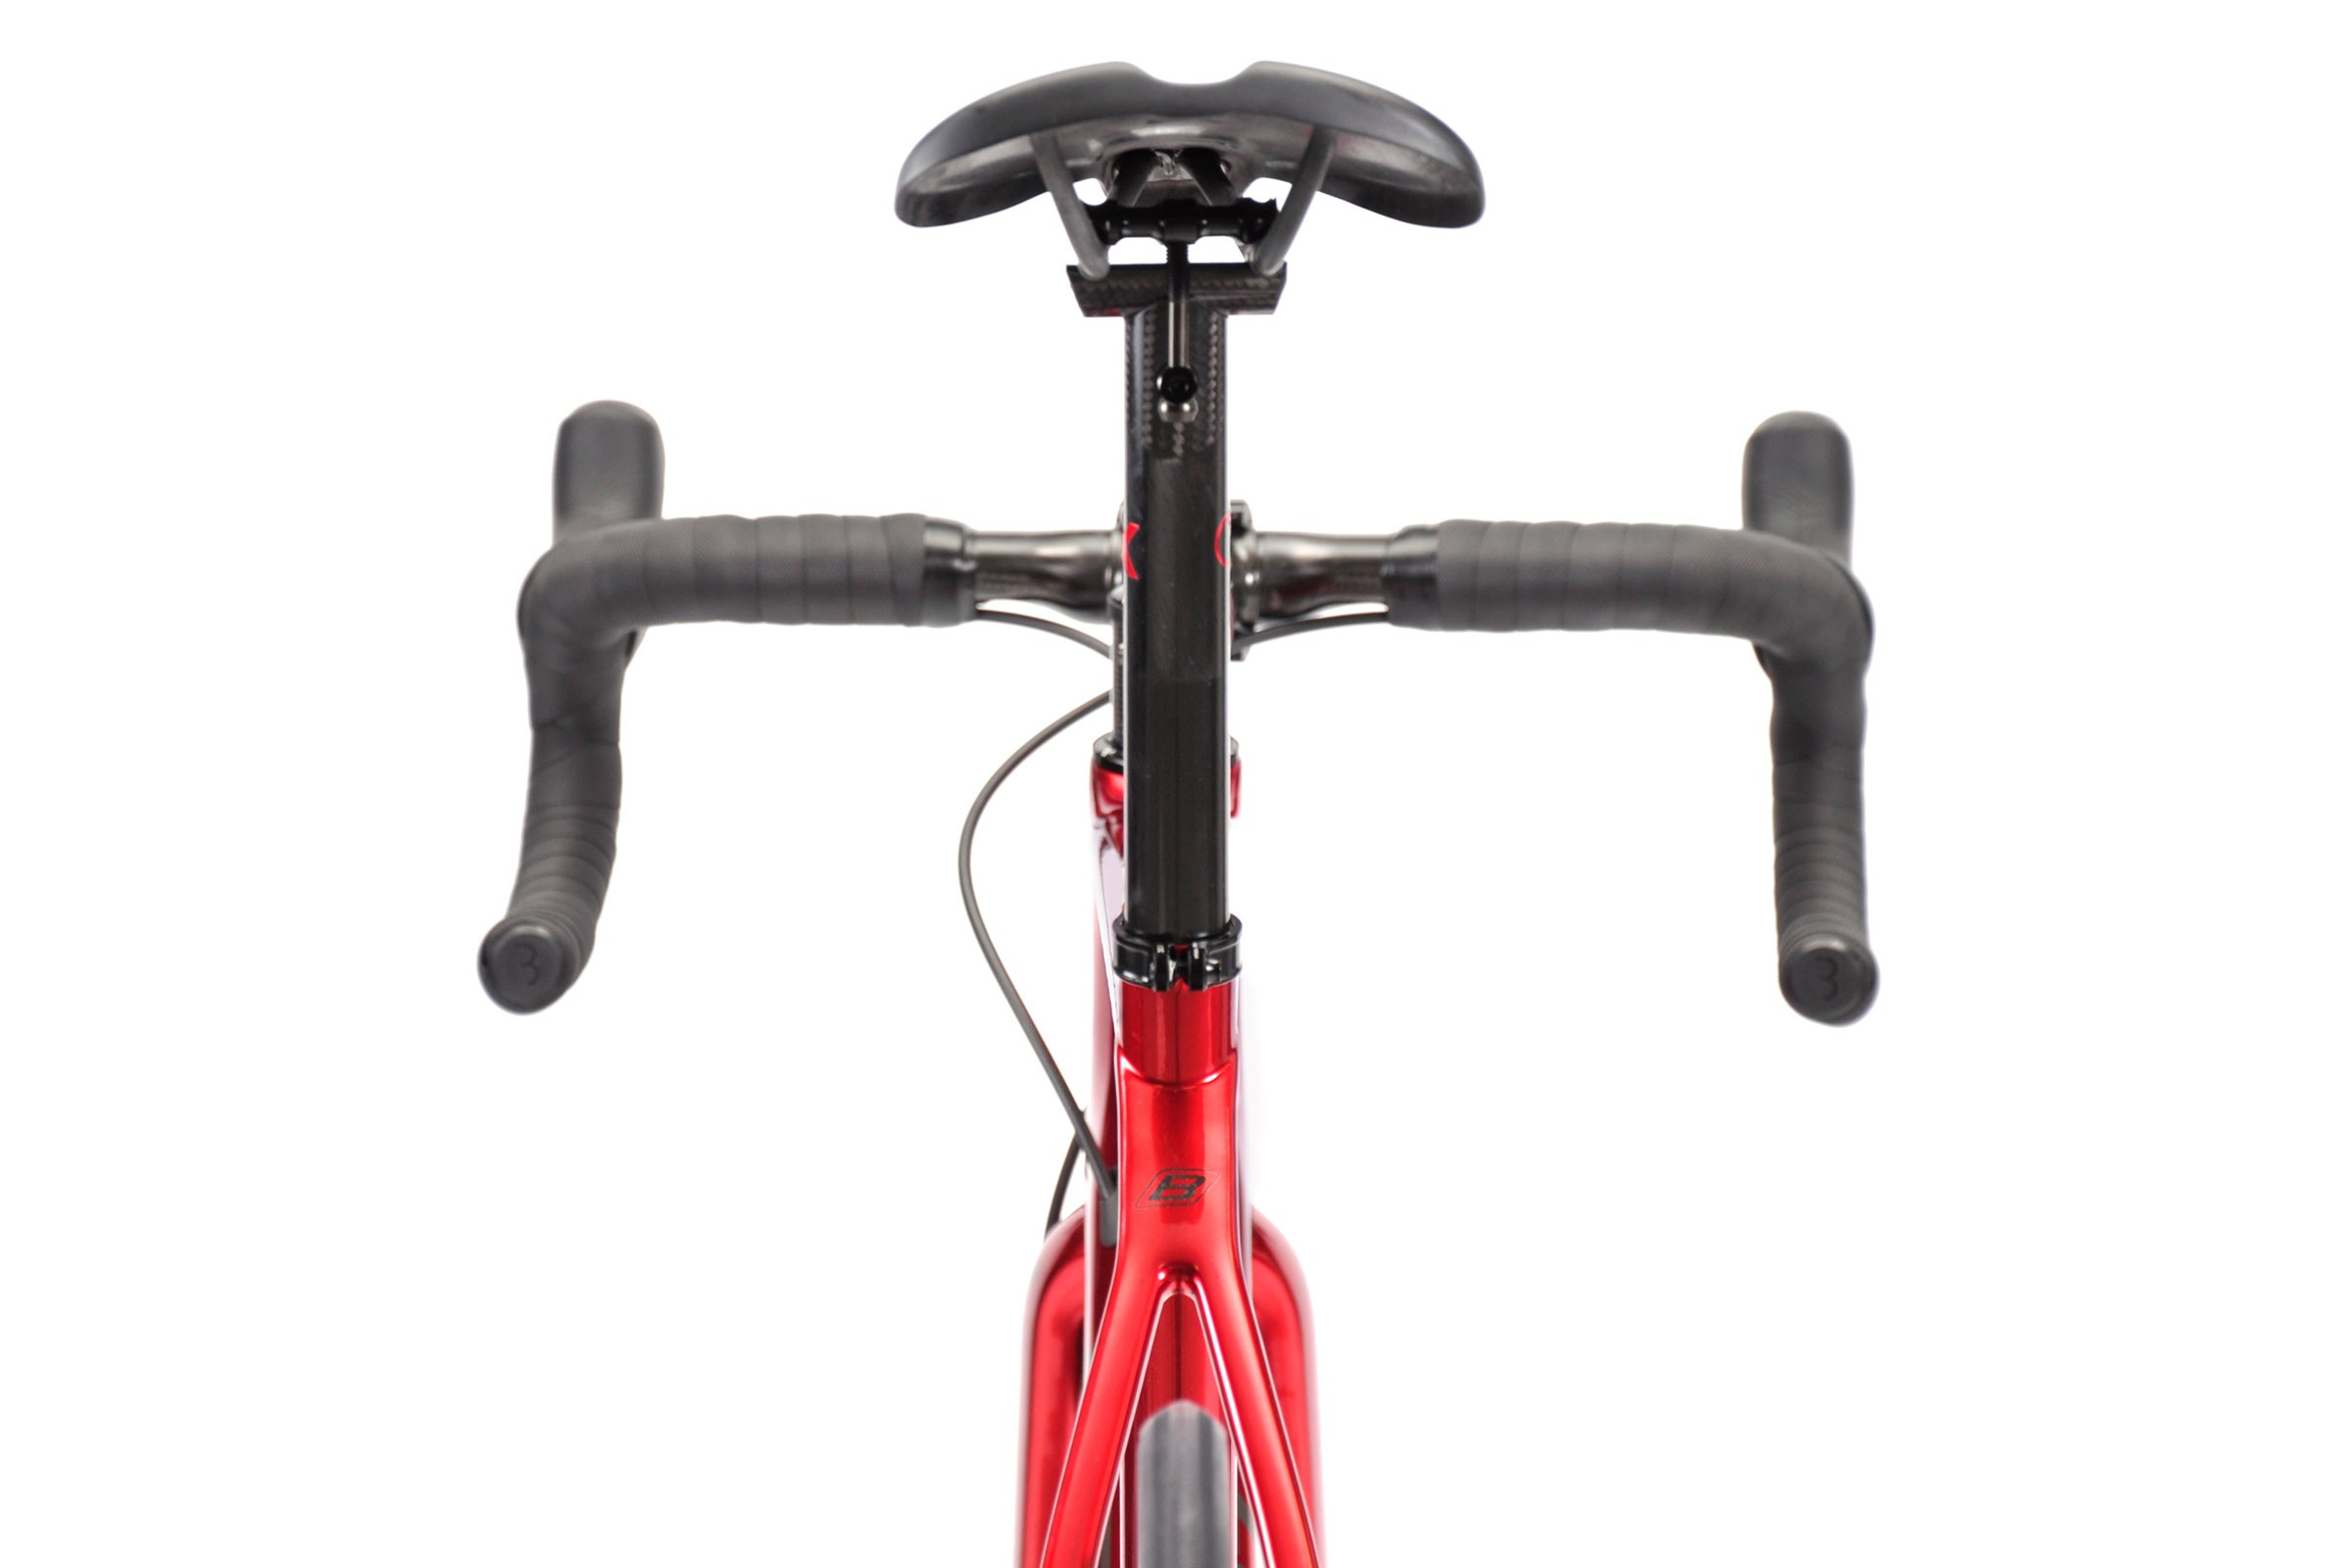 Rear view of seatpost and saddle